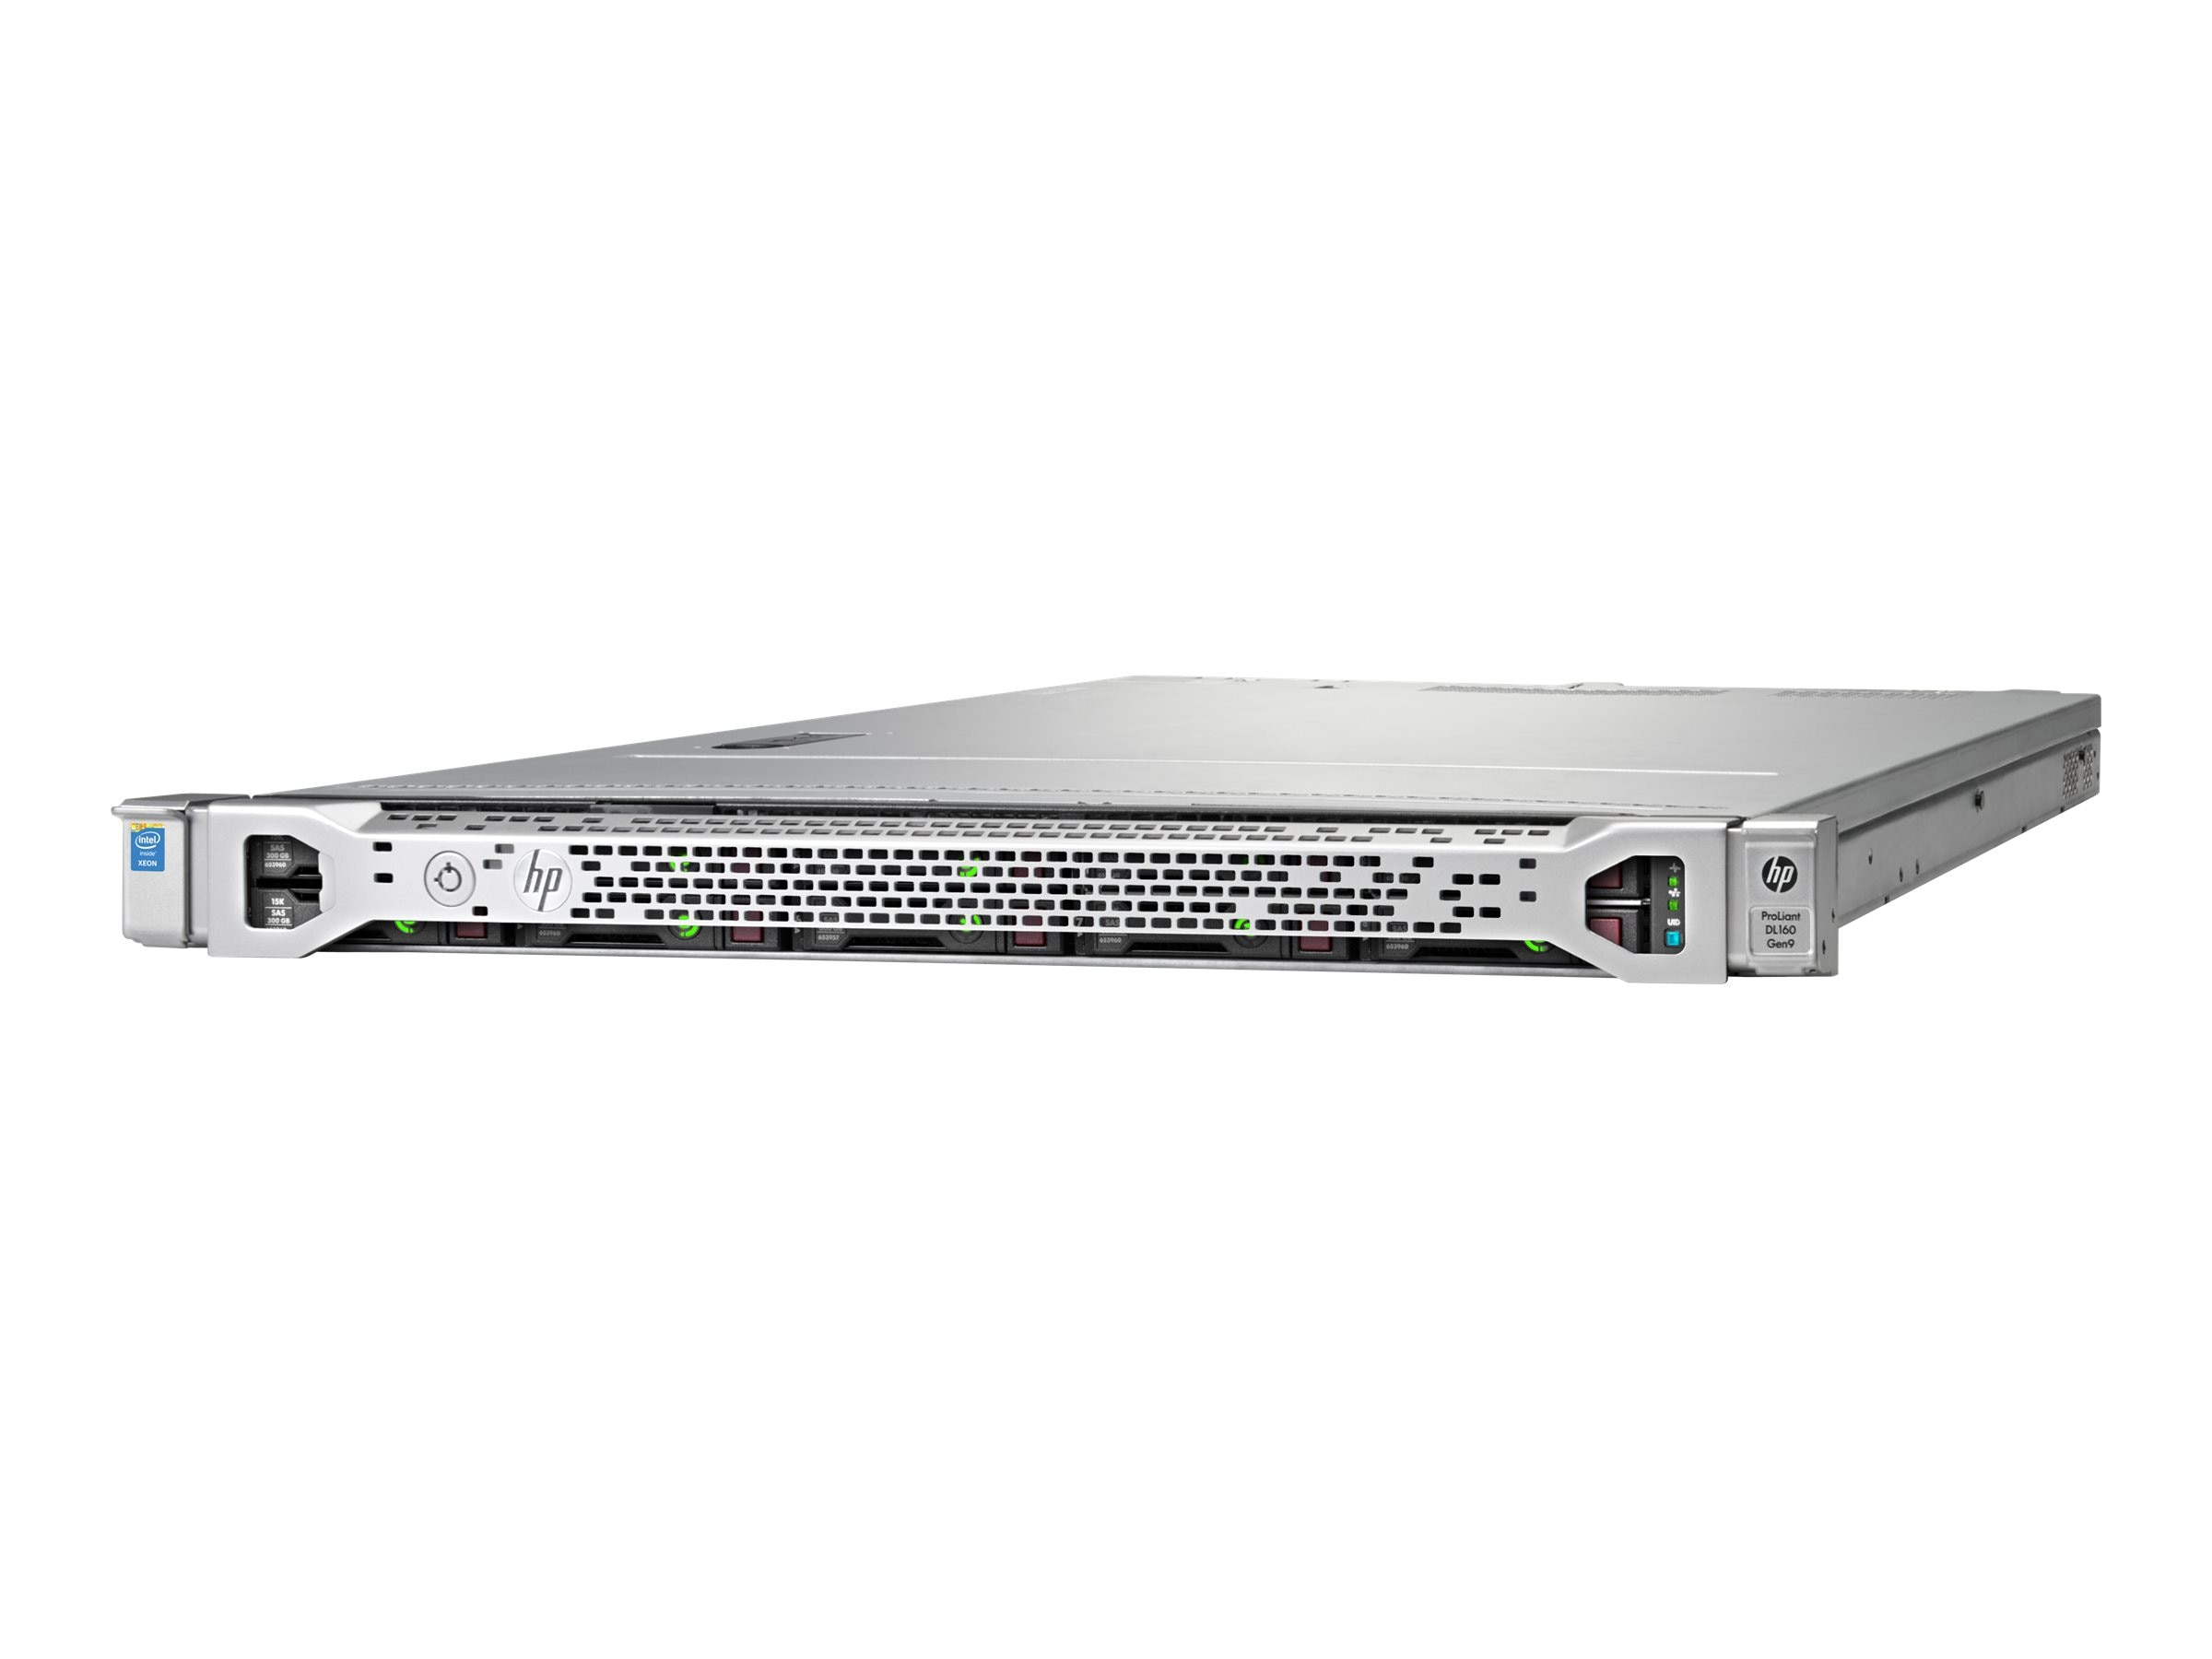 Hewlett Packard Enterprise 830577-S01 Image 1